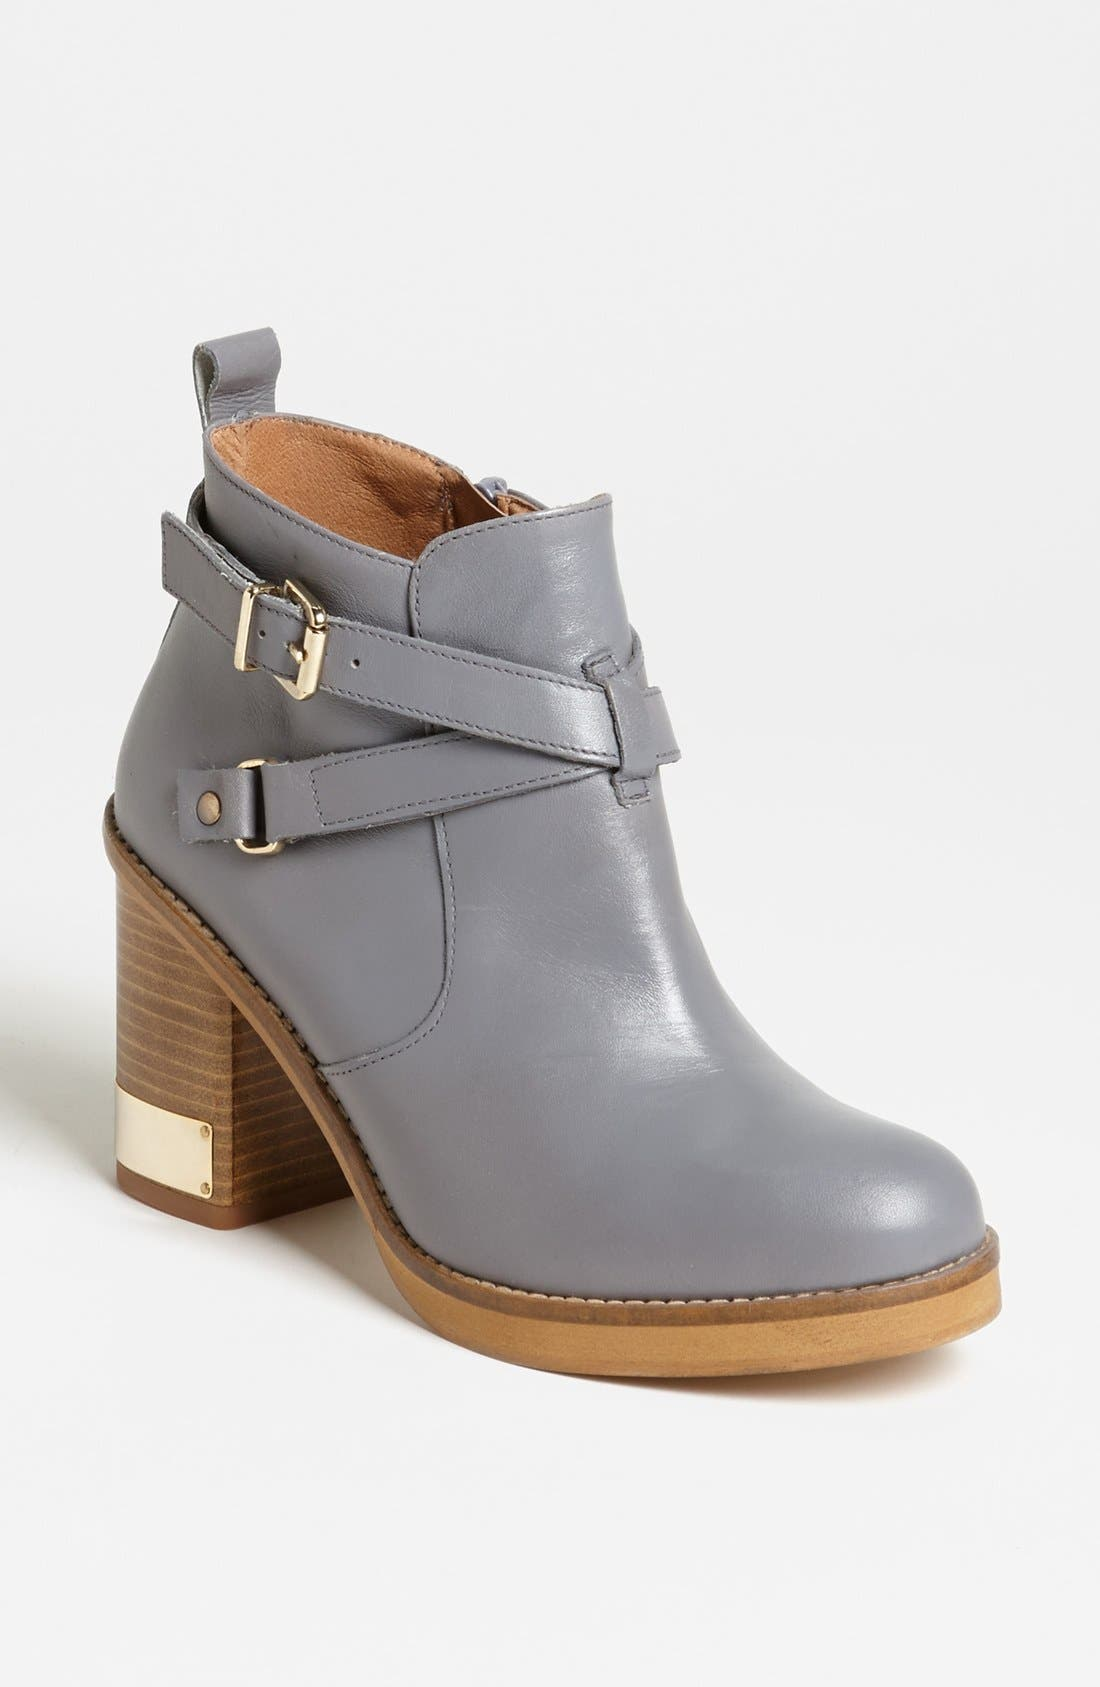 Alternate Image 1 Selected - Topshop 'Amelia Lily' Boot